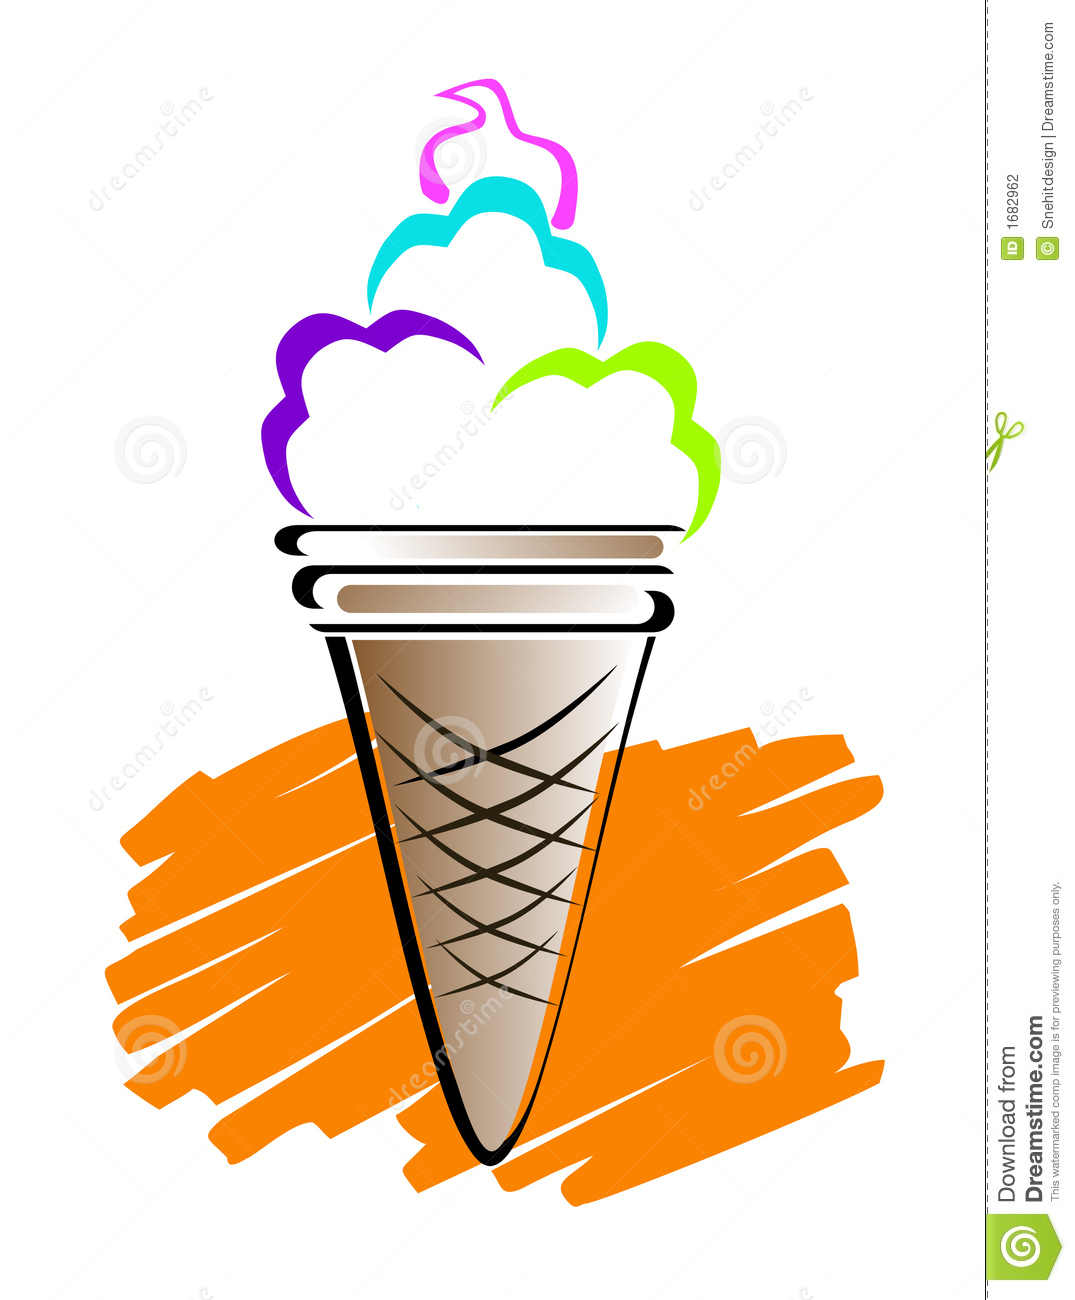 Island Coloring Page And Word Tracing besides Dessert 3825563 furthermore Cheeky Smiling Cartoon Tv Or Monitor 18527747 likewise The Emoji Movie Coloring Pages 103 together with Kids Printable Draw Some Birds 2. on ice cream cone line drawing